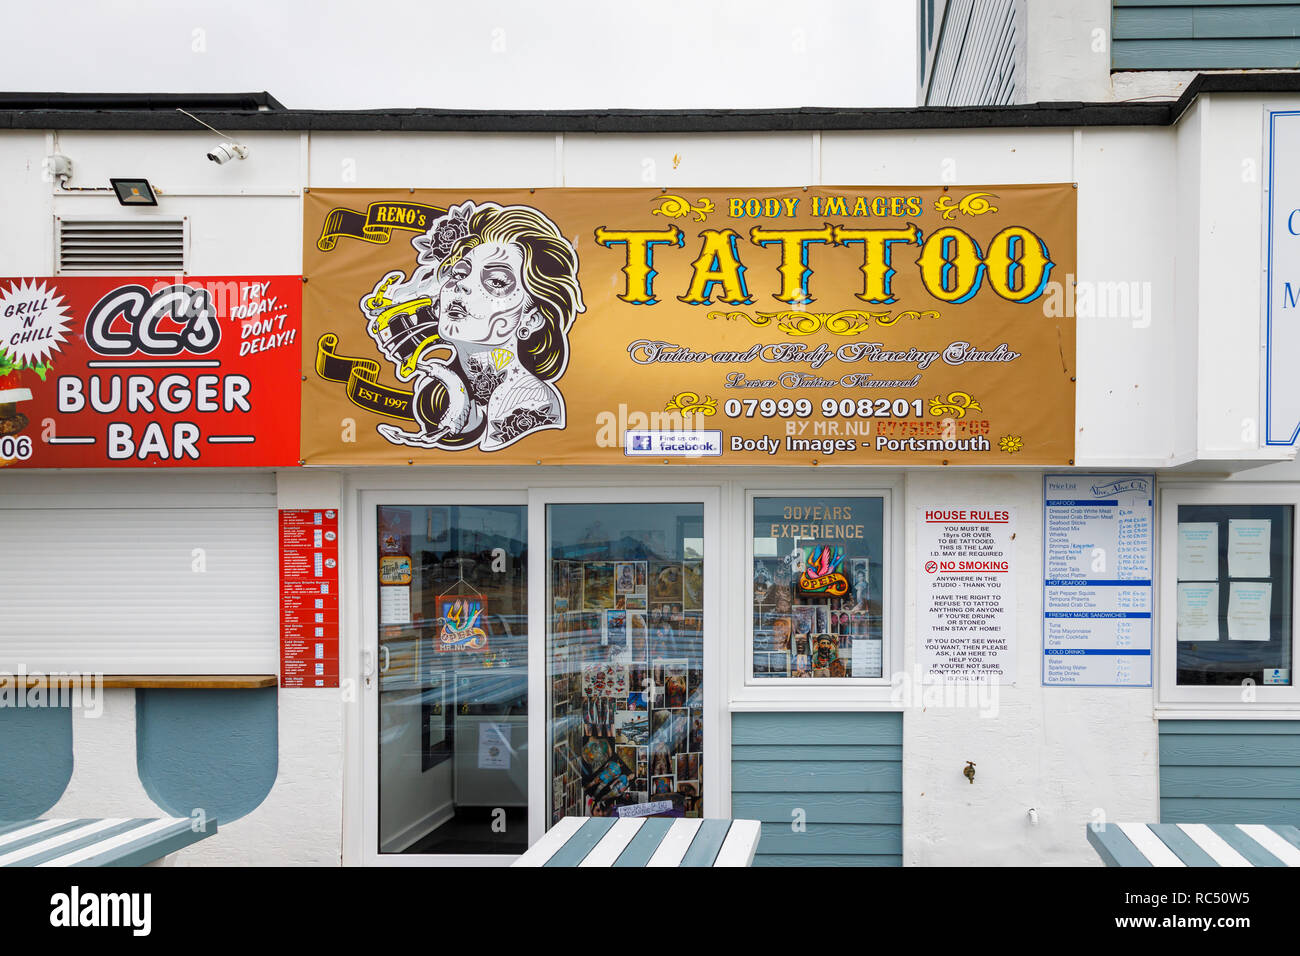 Body Images tattoo and body piercing studio for body art on South Parade Pier, Southsea, Portsmouth, south coast England, UK Stock Photo